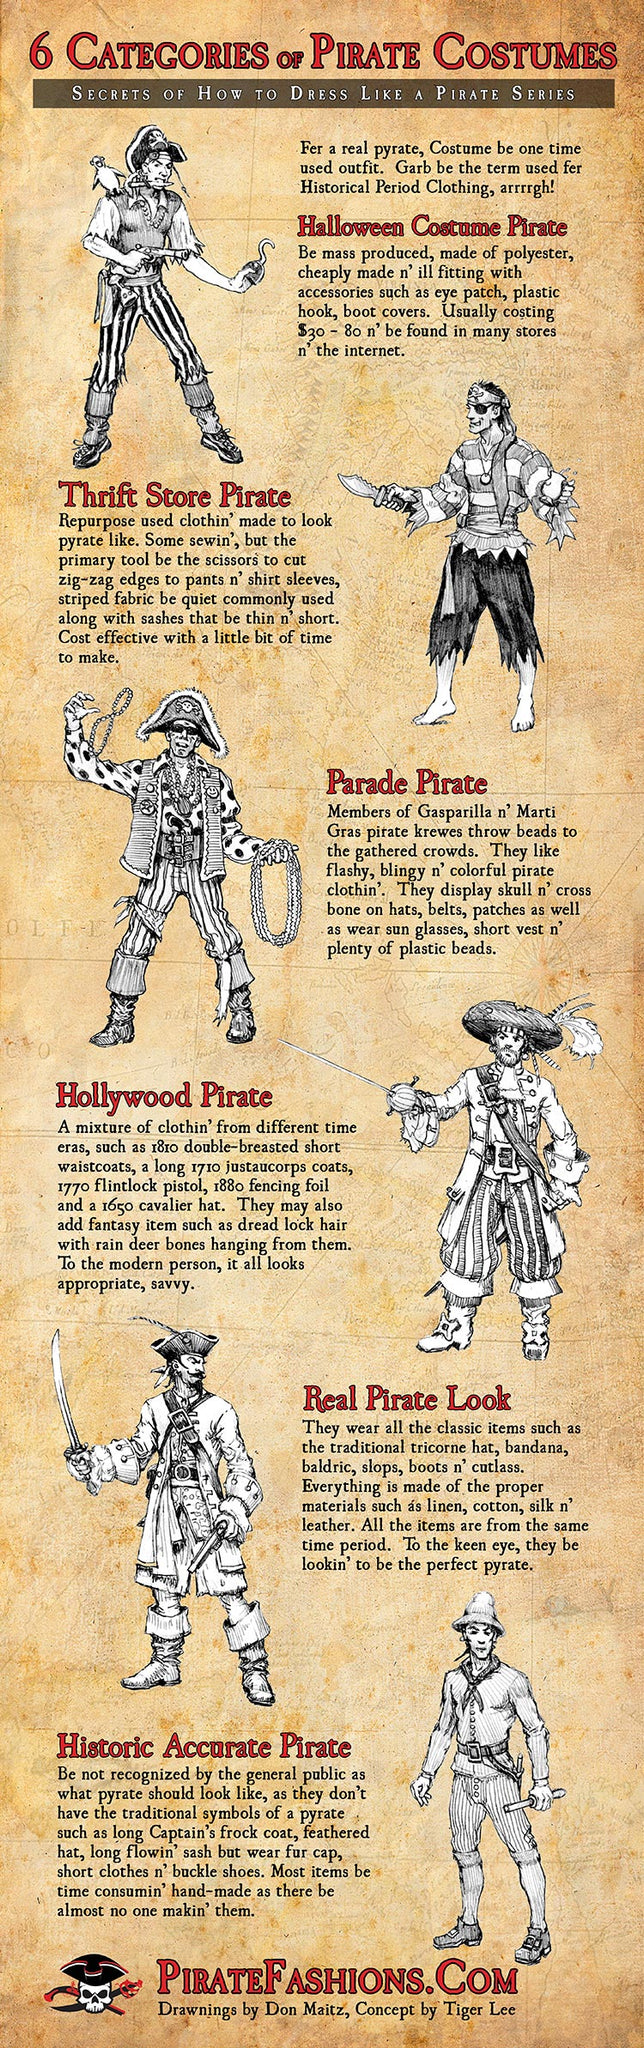 6 Types of Pirate Costumes